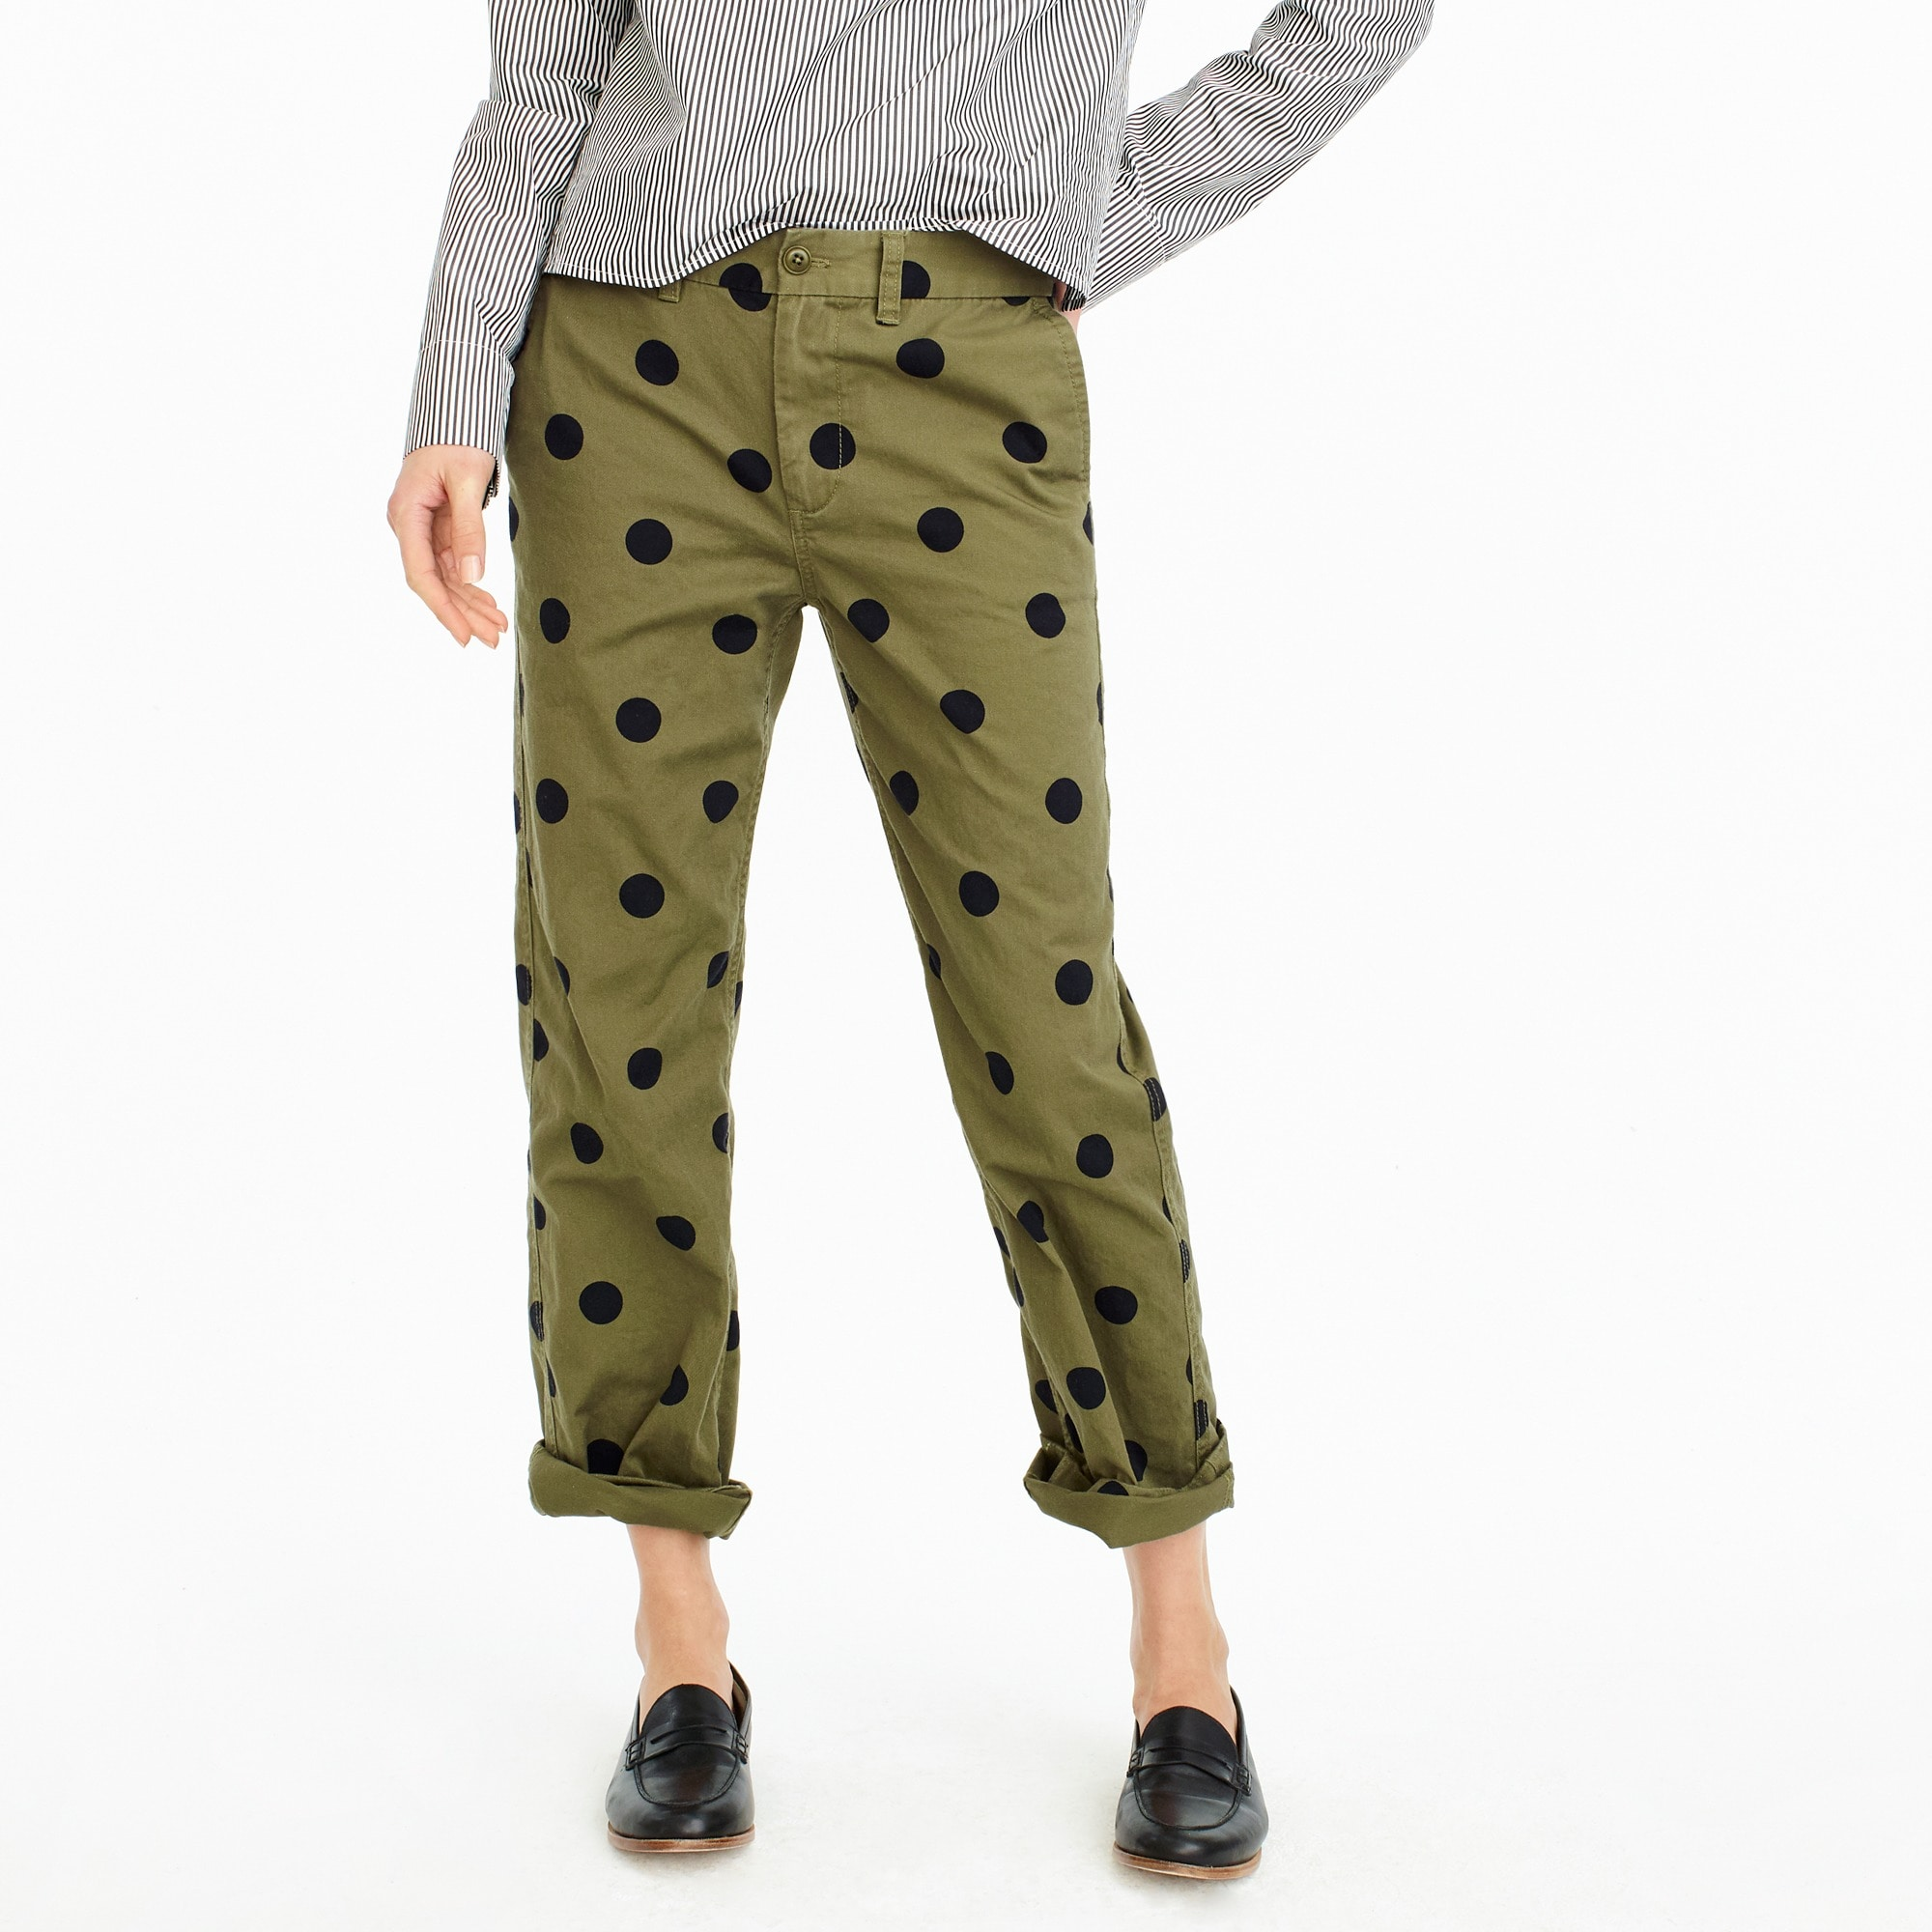 womens Tall boyfriend chino pant in polka dot